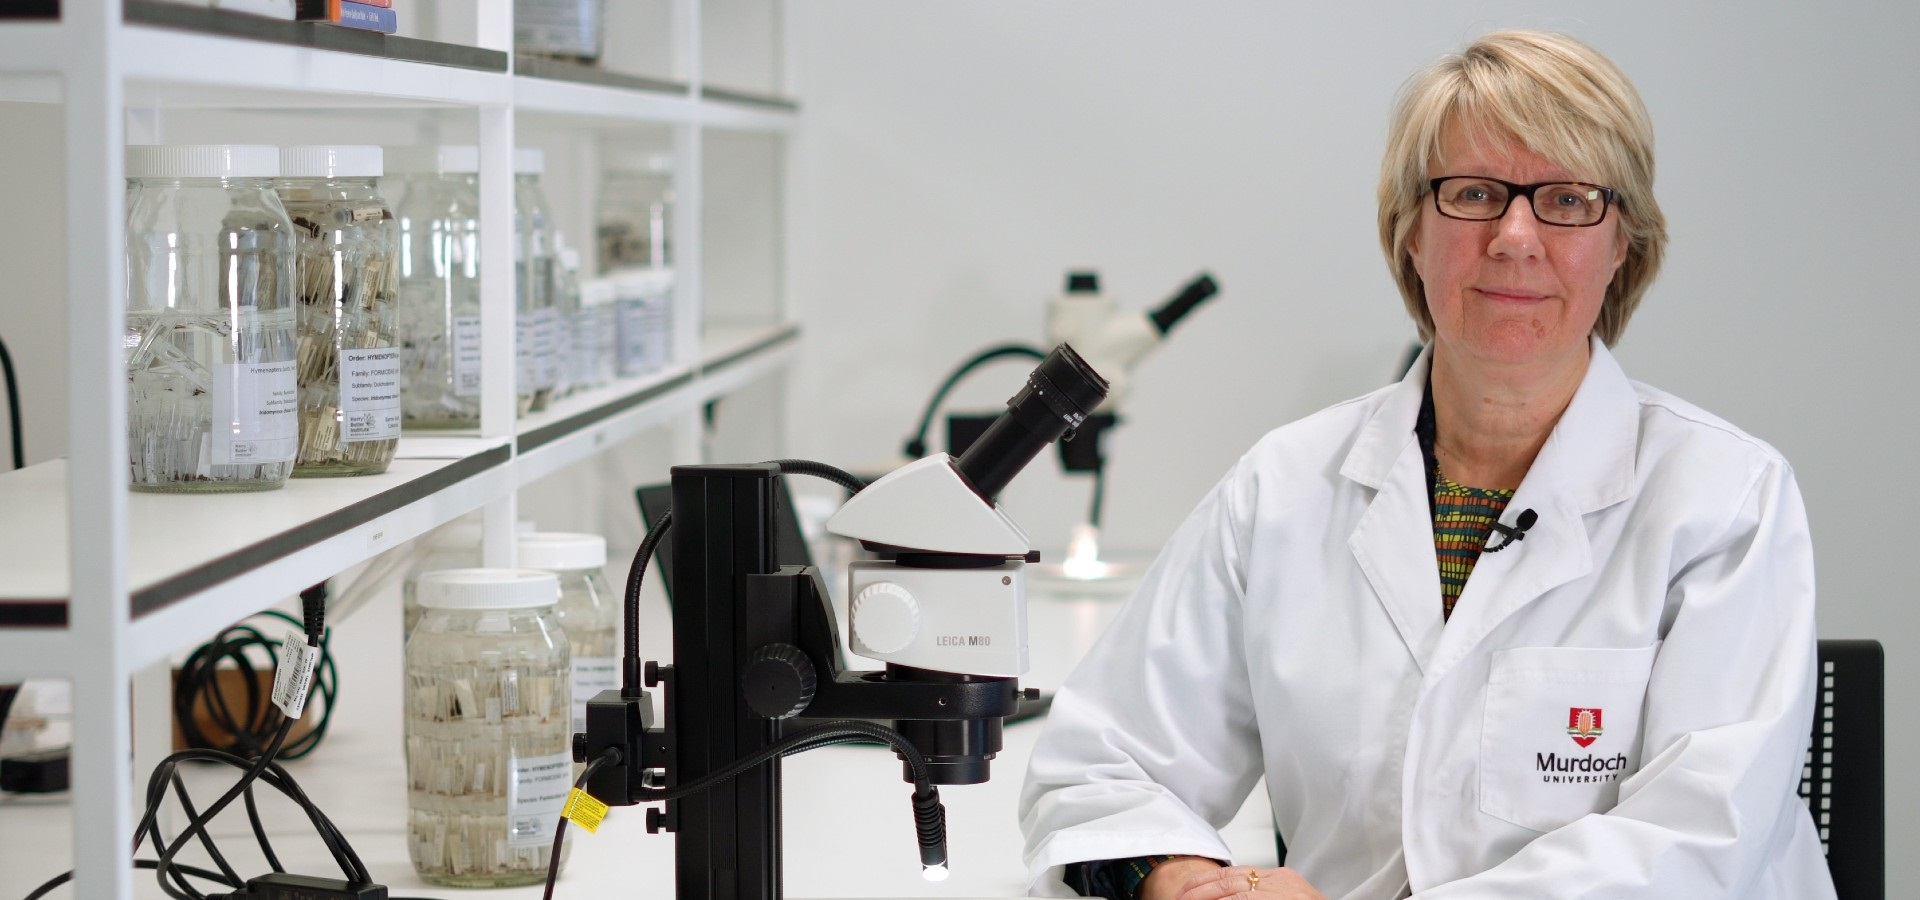 Vice Chancellor Professor Eeva Leinonen in a lab coat